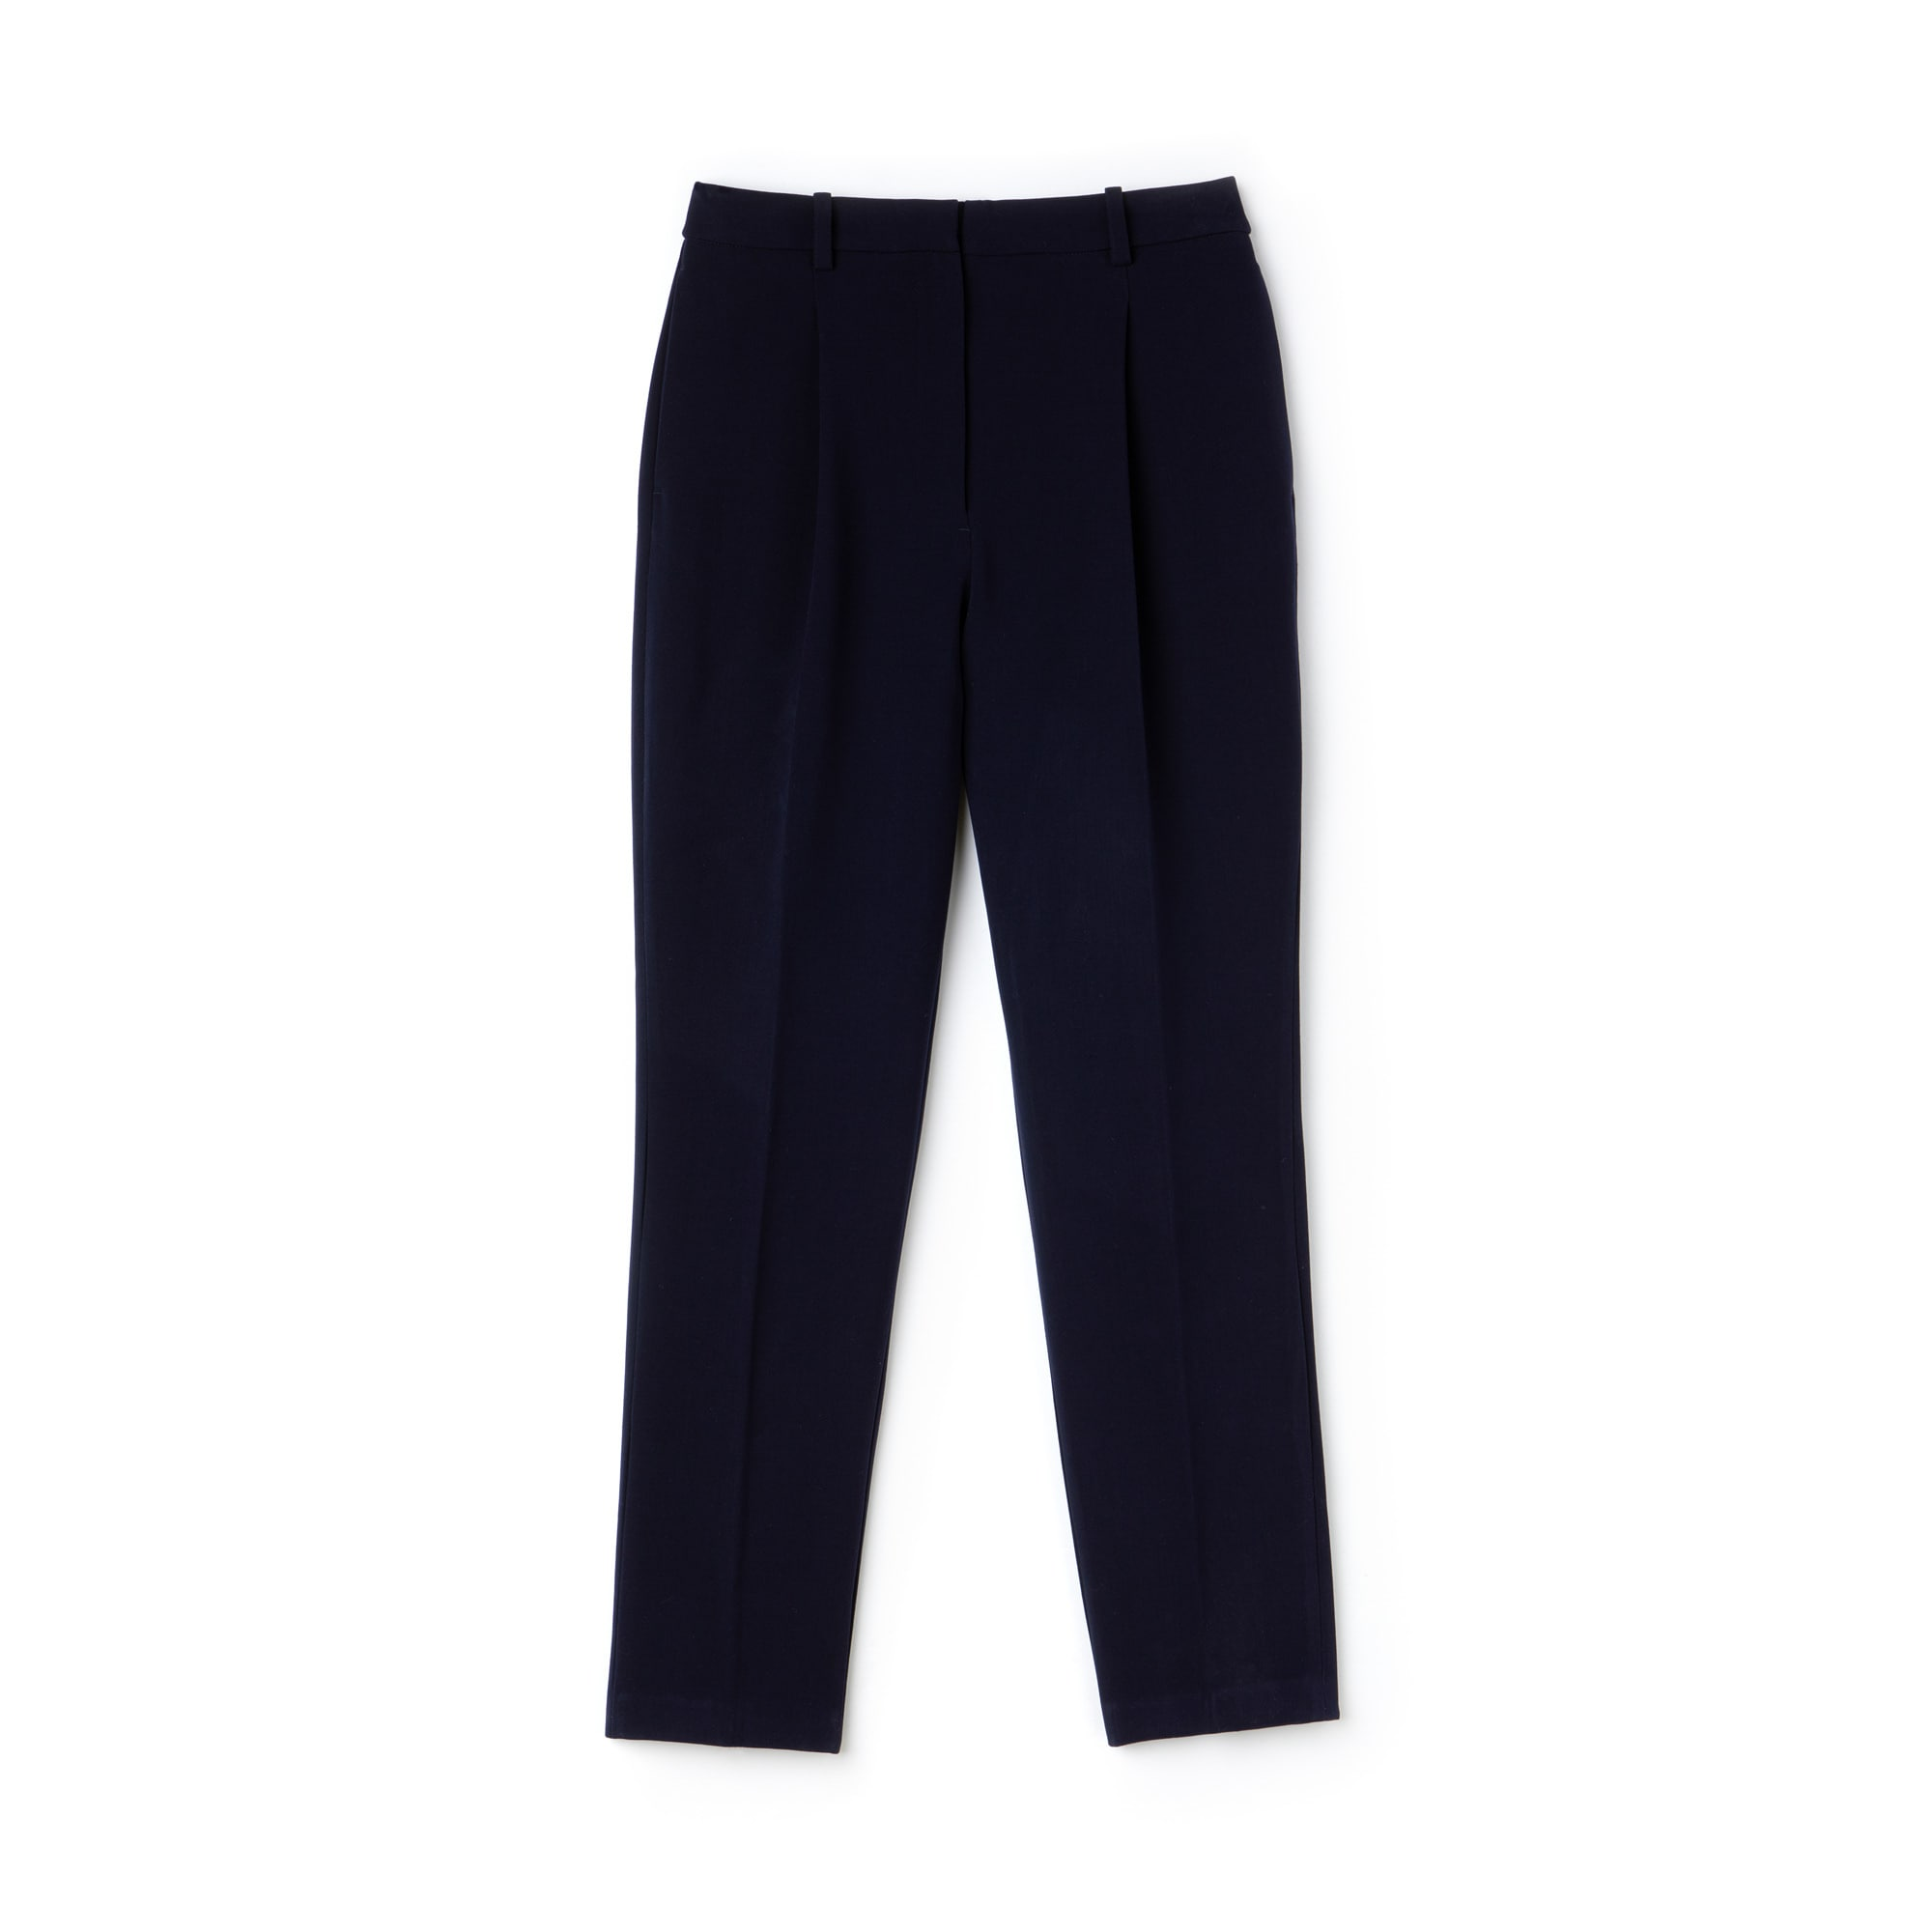 Women's Slim Fit Stretch Cotton Gabardine Carrot Pants